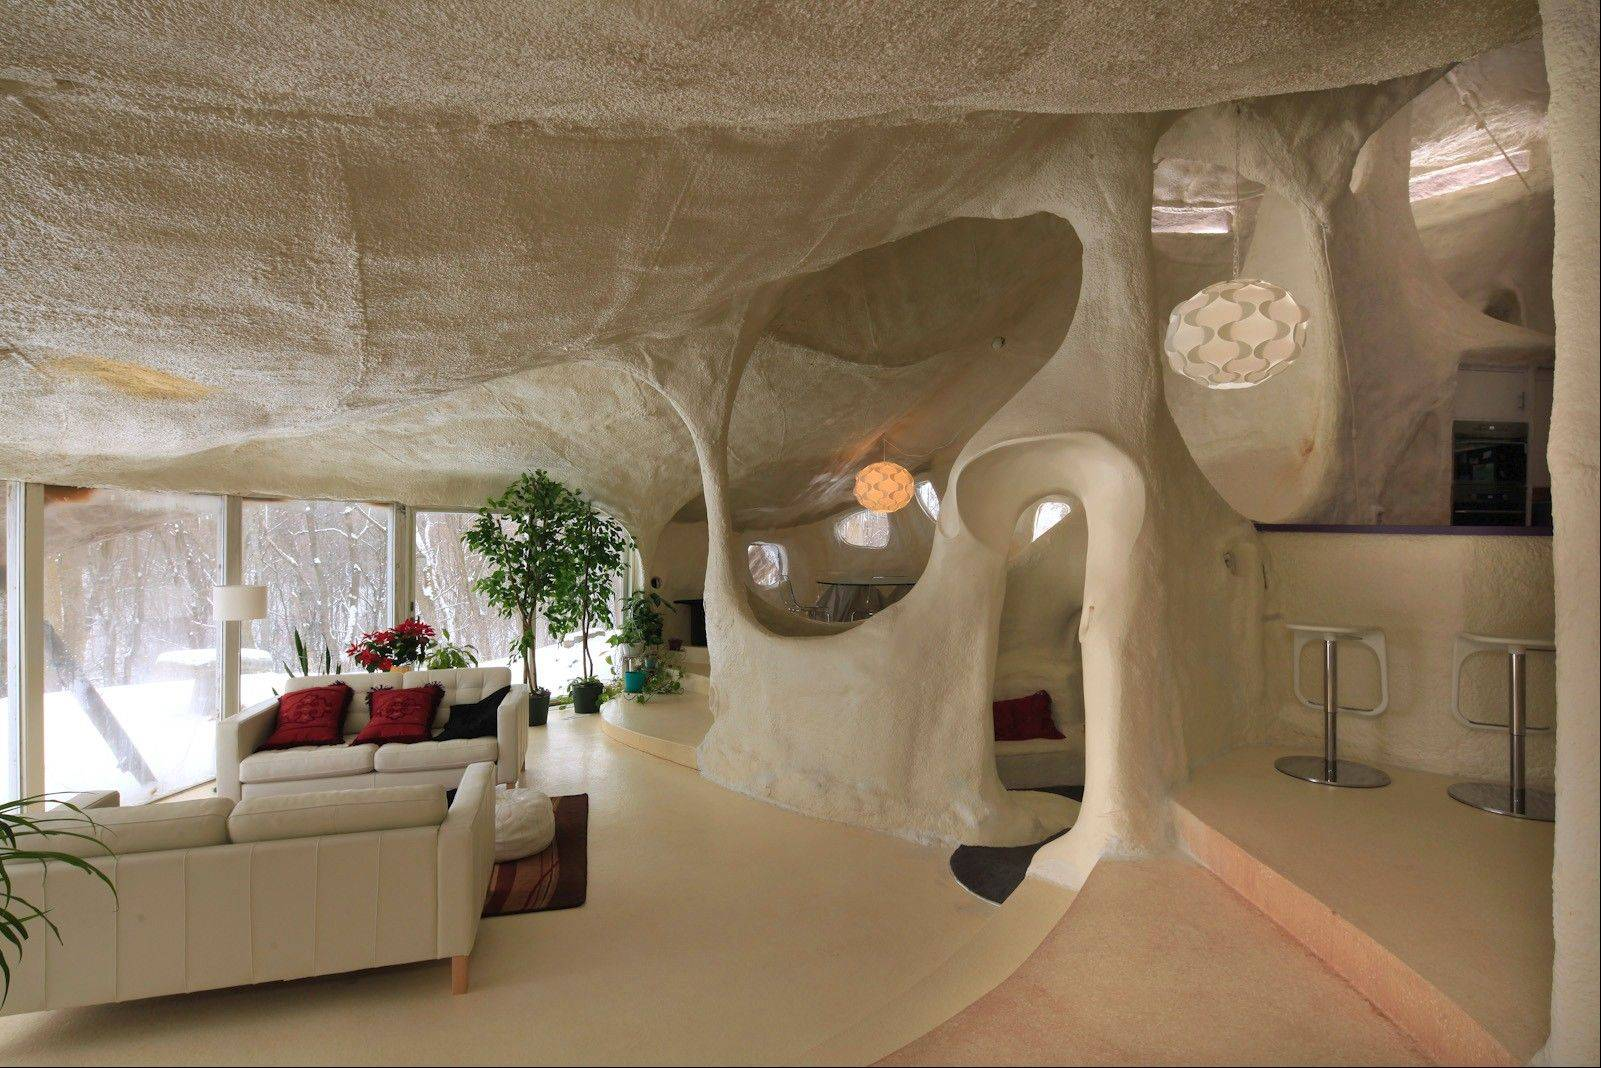 The multilevel interior is composed of dips and swirls with different ceiling heights.